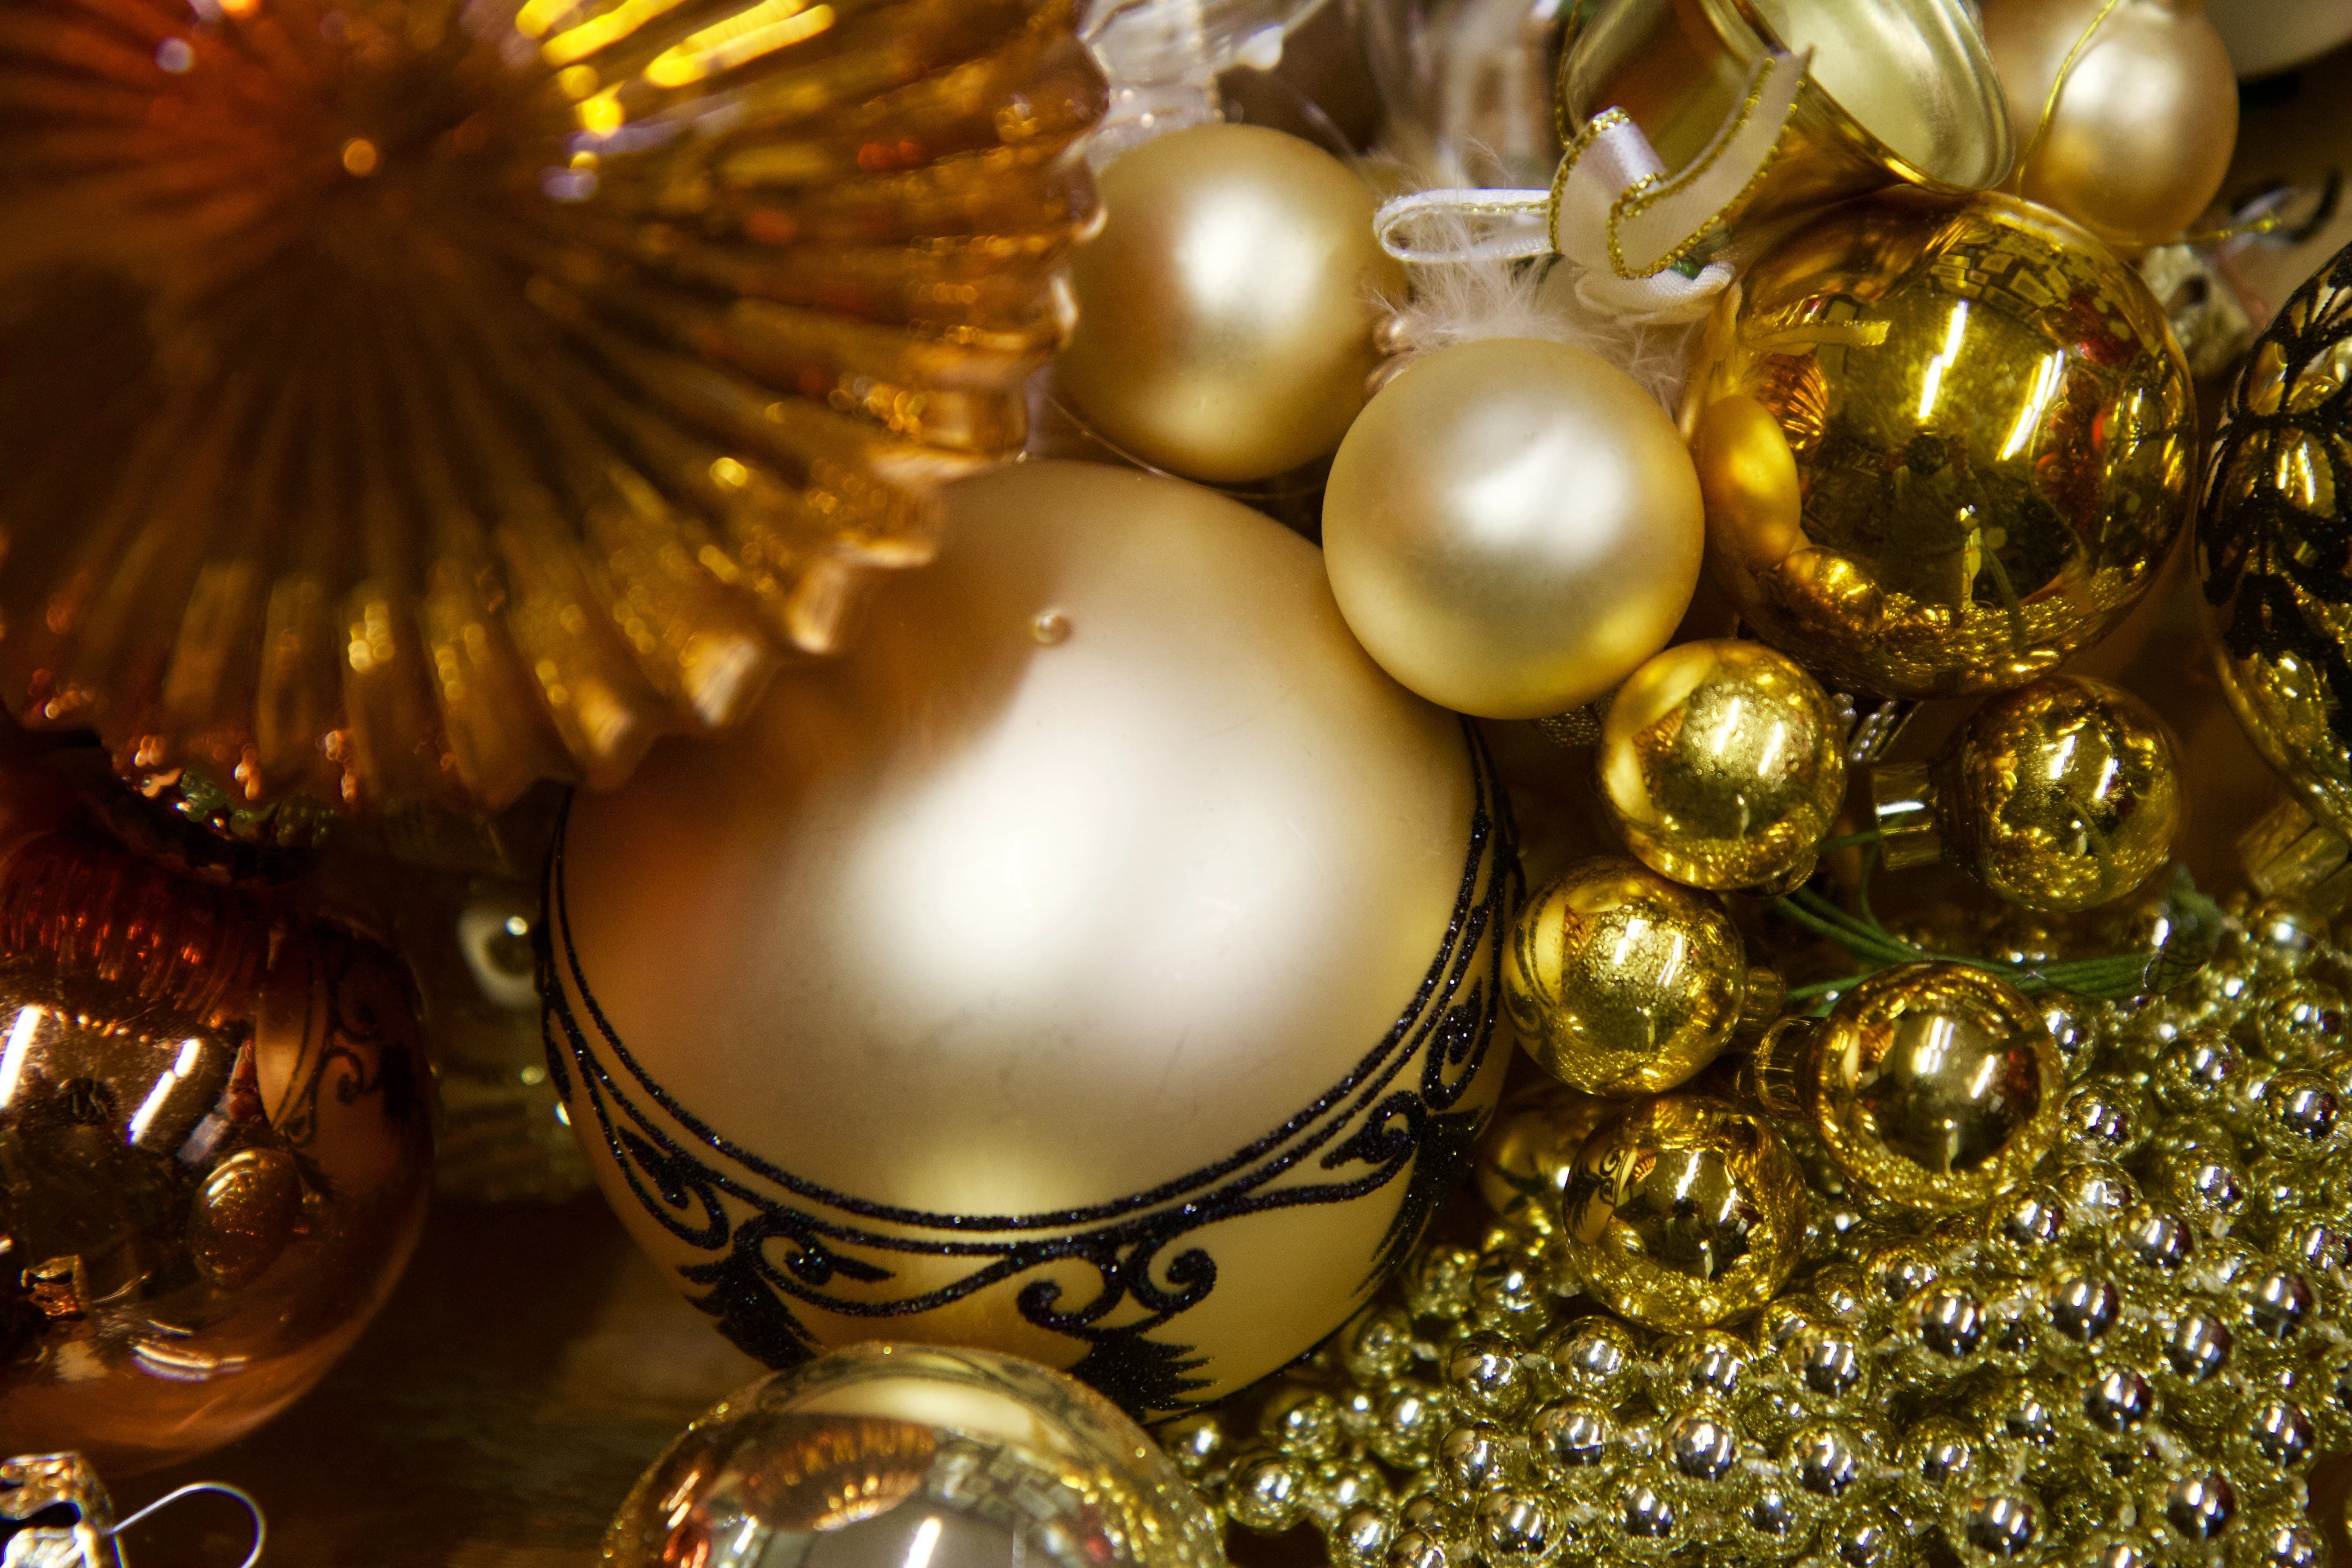 Gold and Beige Bauble Lot